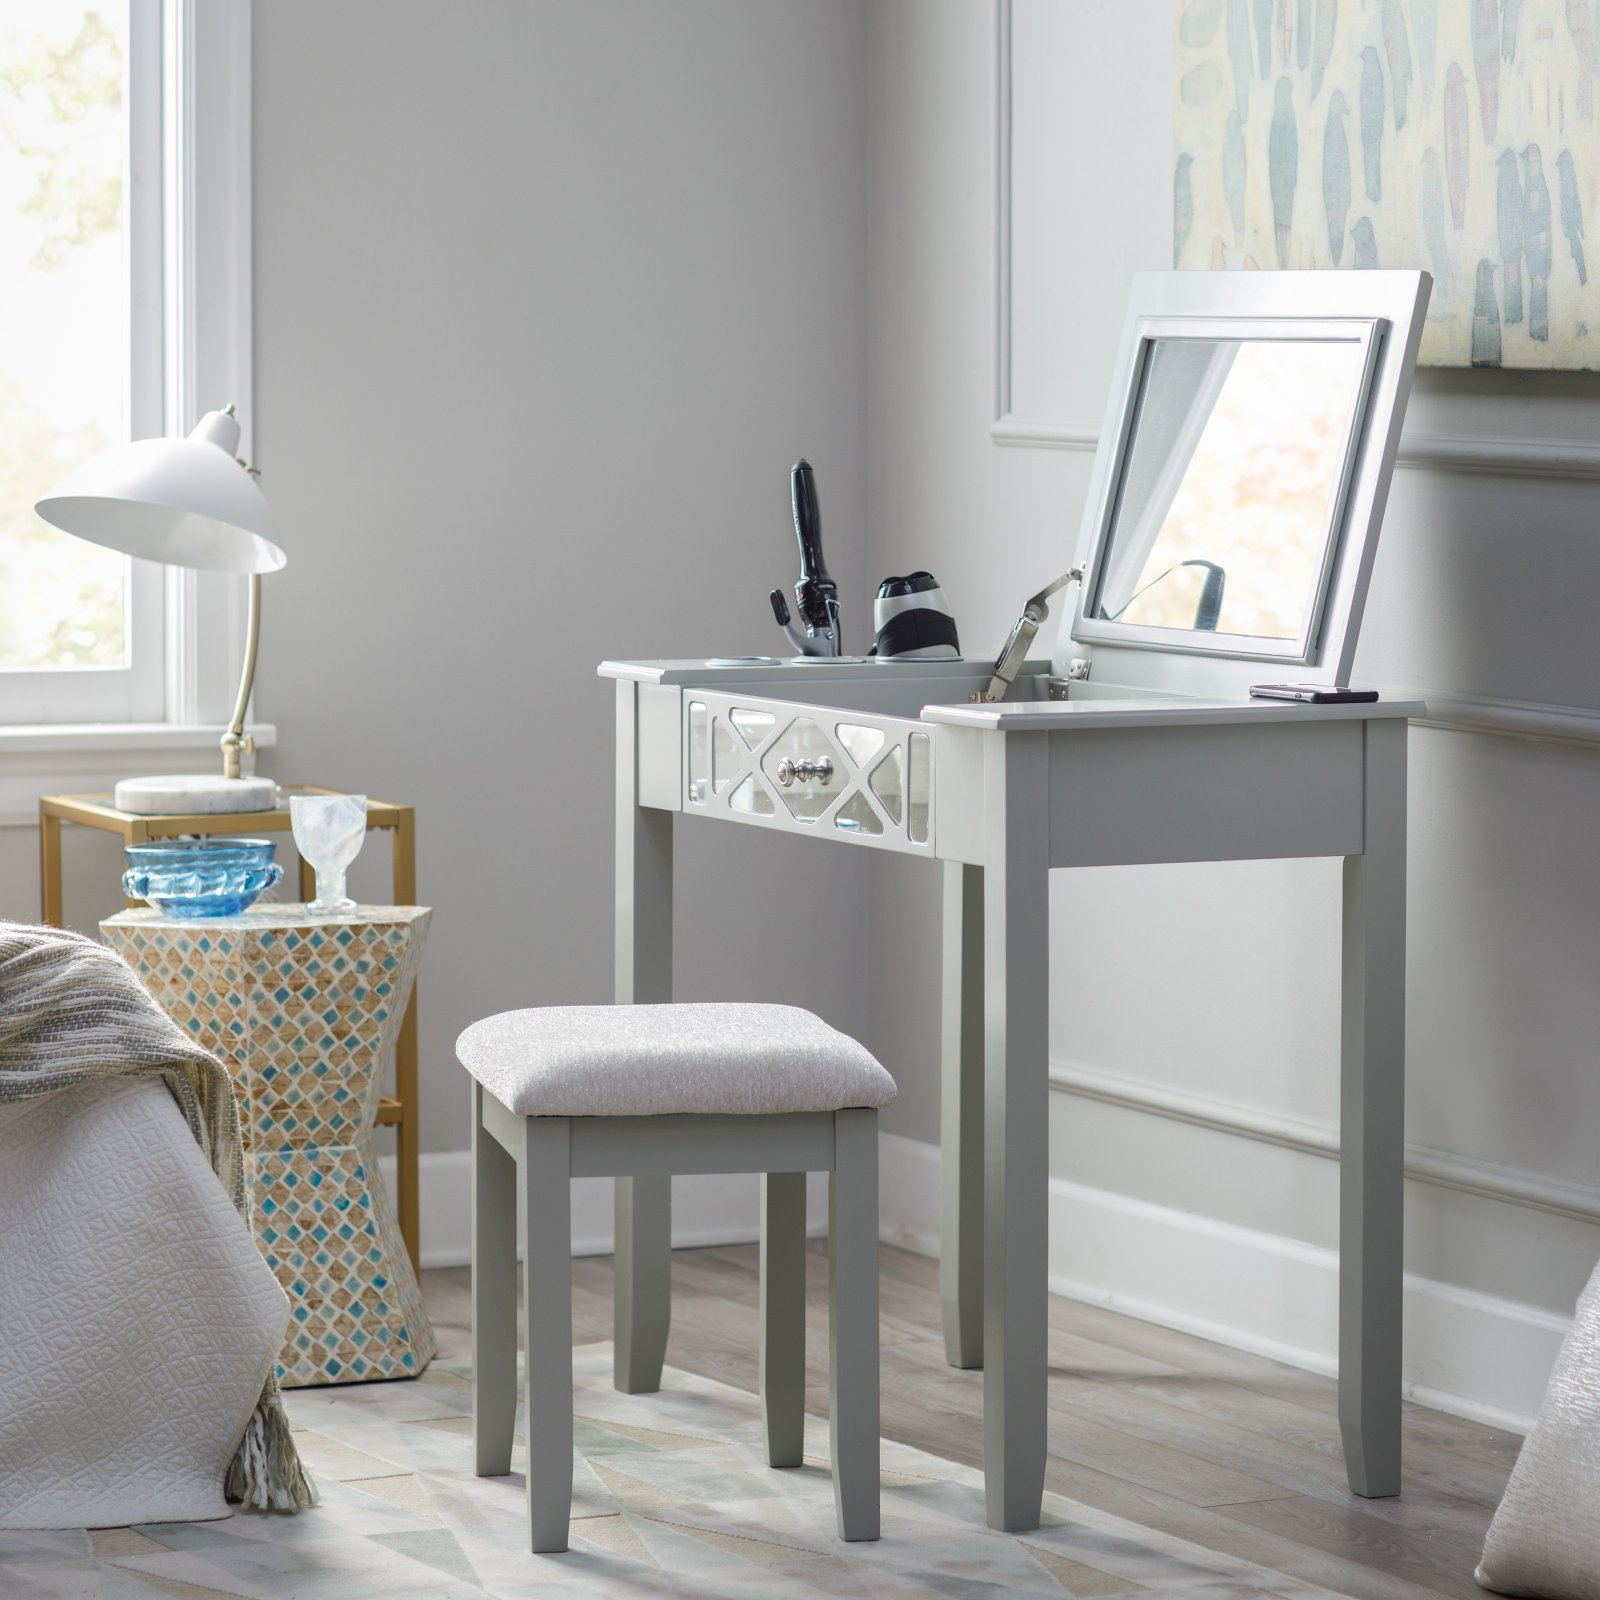 Belham Living Florence Vanity Set - Gray